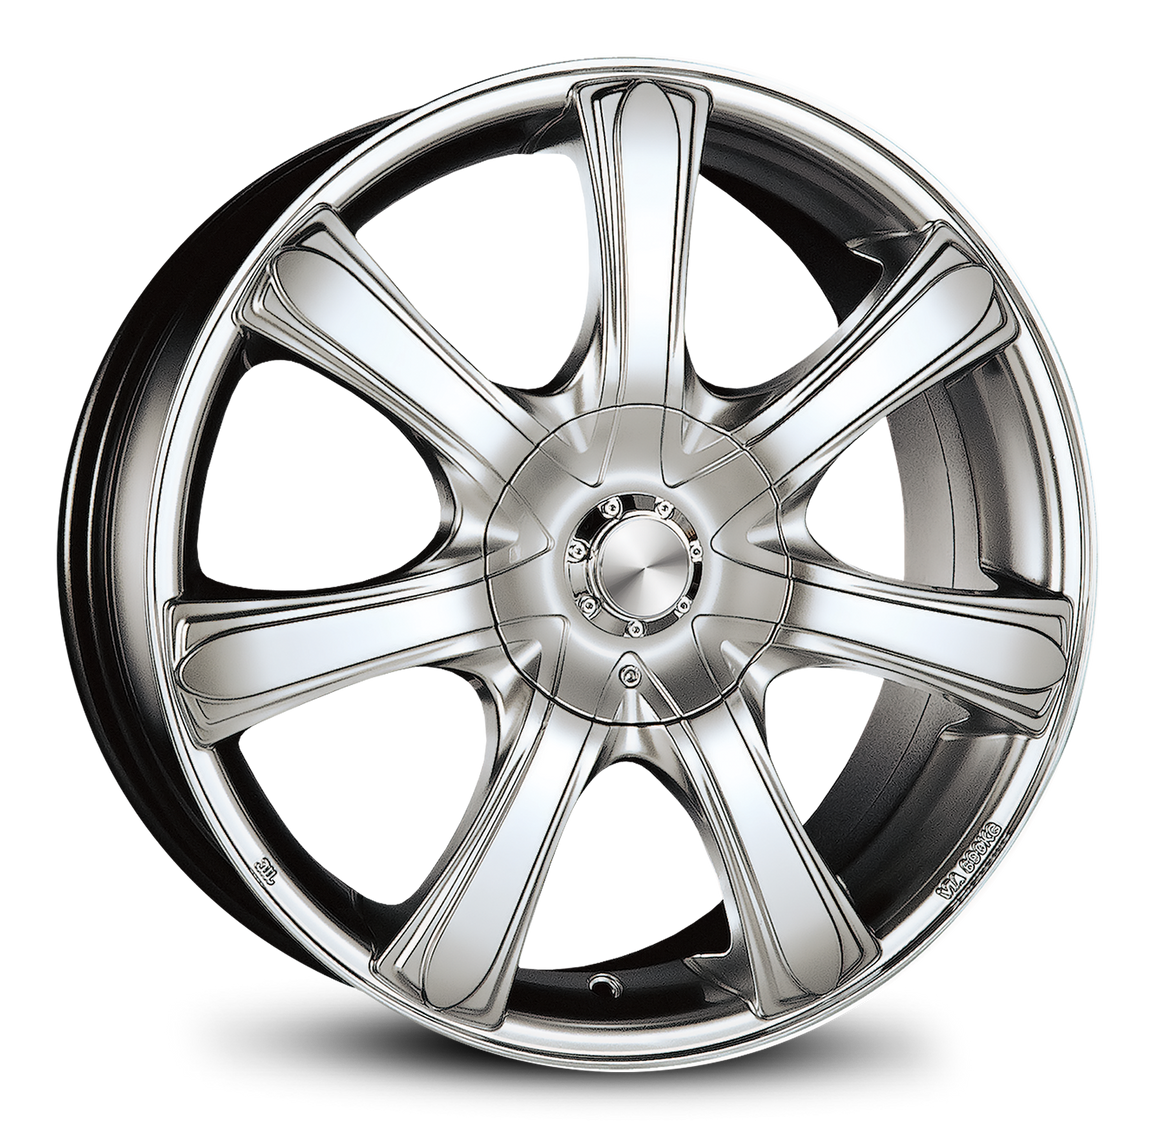 HD Wheels HD Wheels Pypz Closeout 17 x 7.0  / 5x114.3/5x120 | et40mm | 73.1mm / Silver HD Wheels Storm 7 | Silver